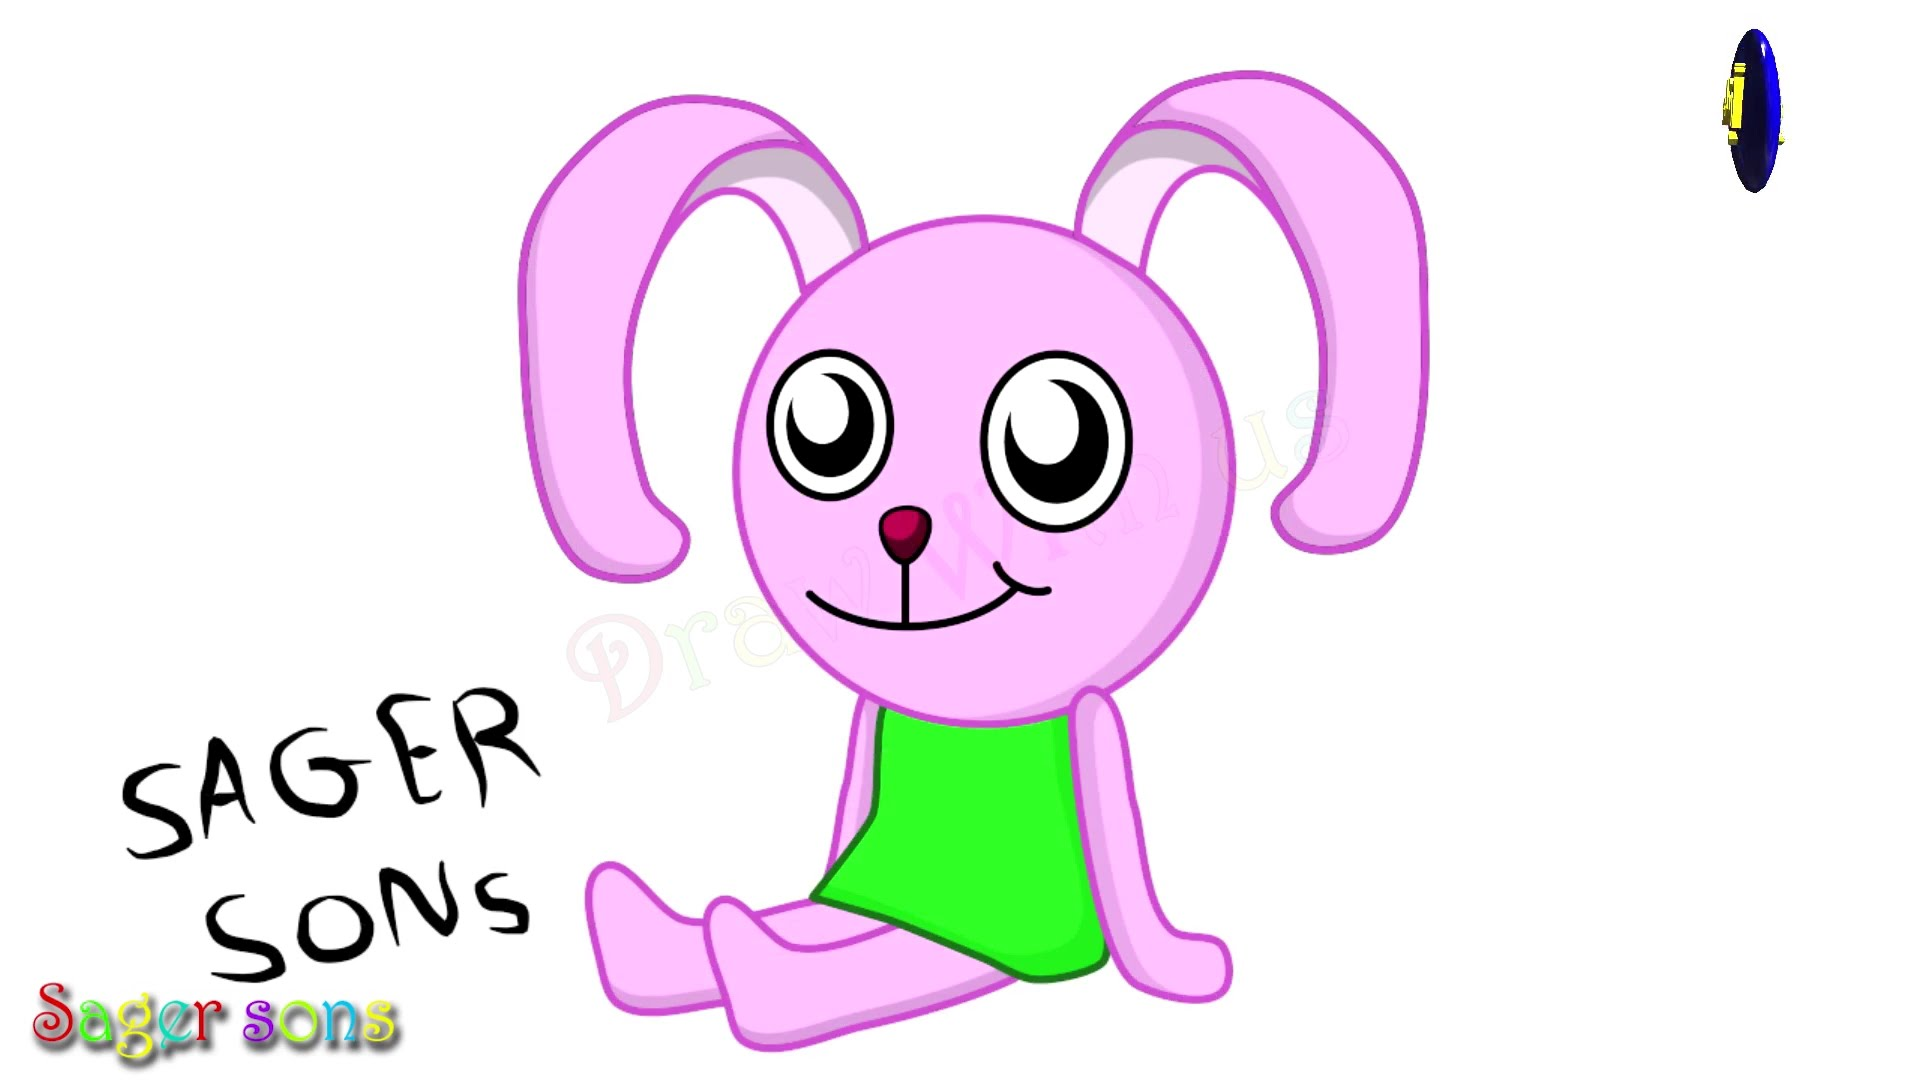 Drawn rabbit little rabbit YouTube a to Draw To